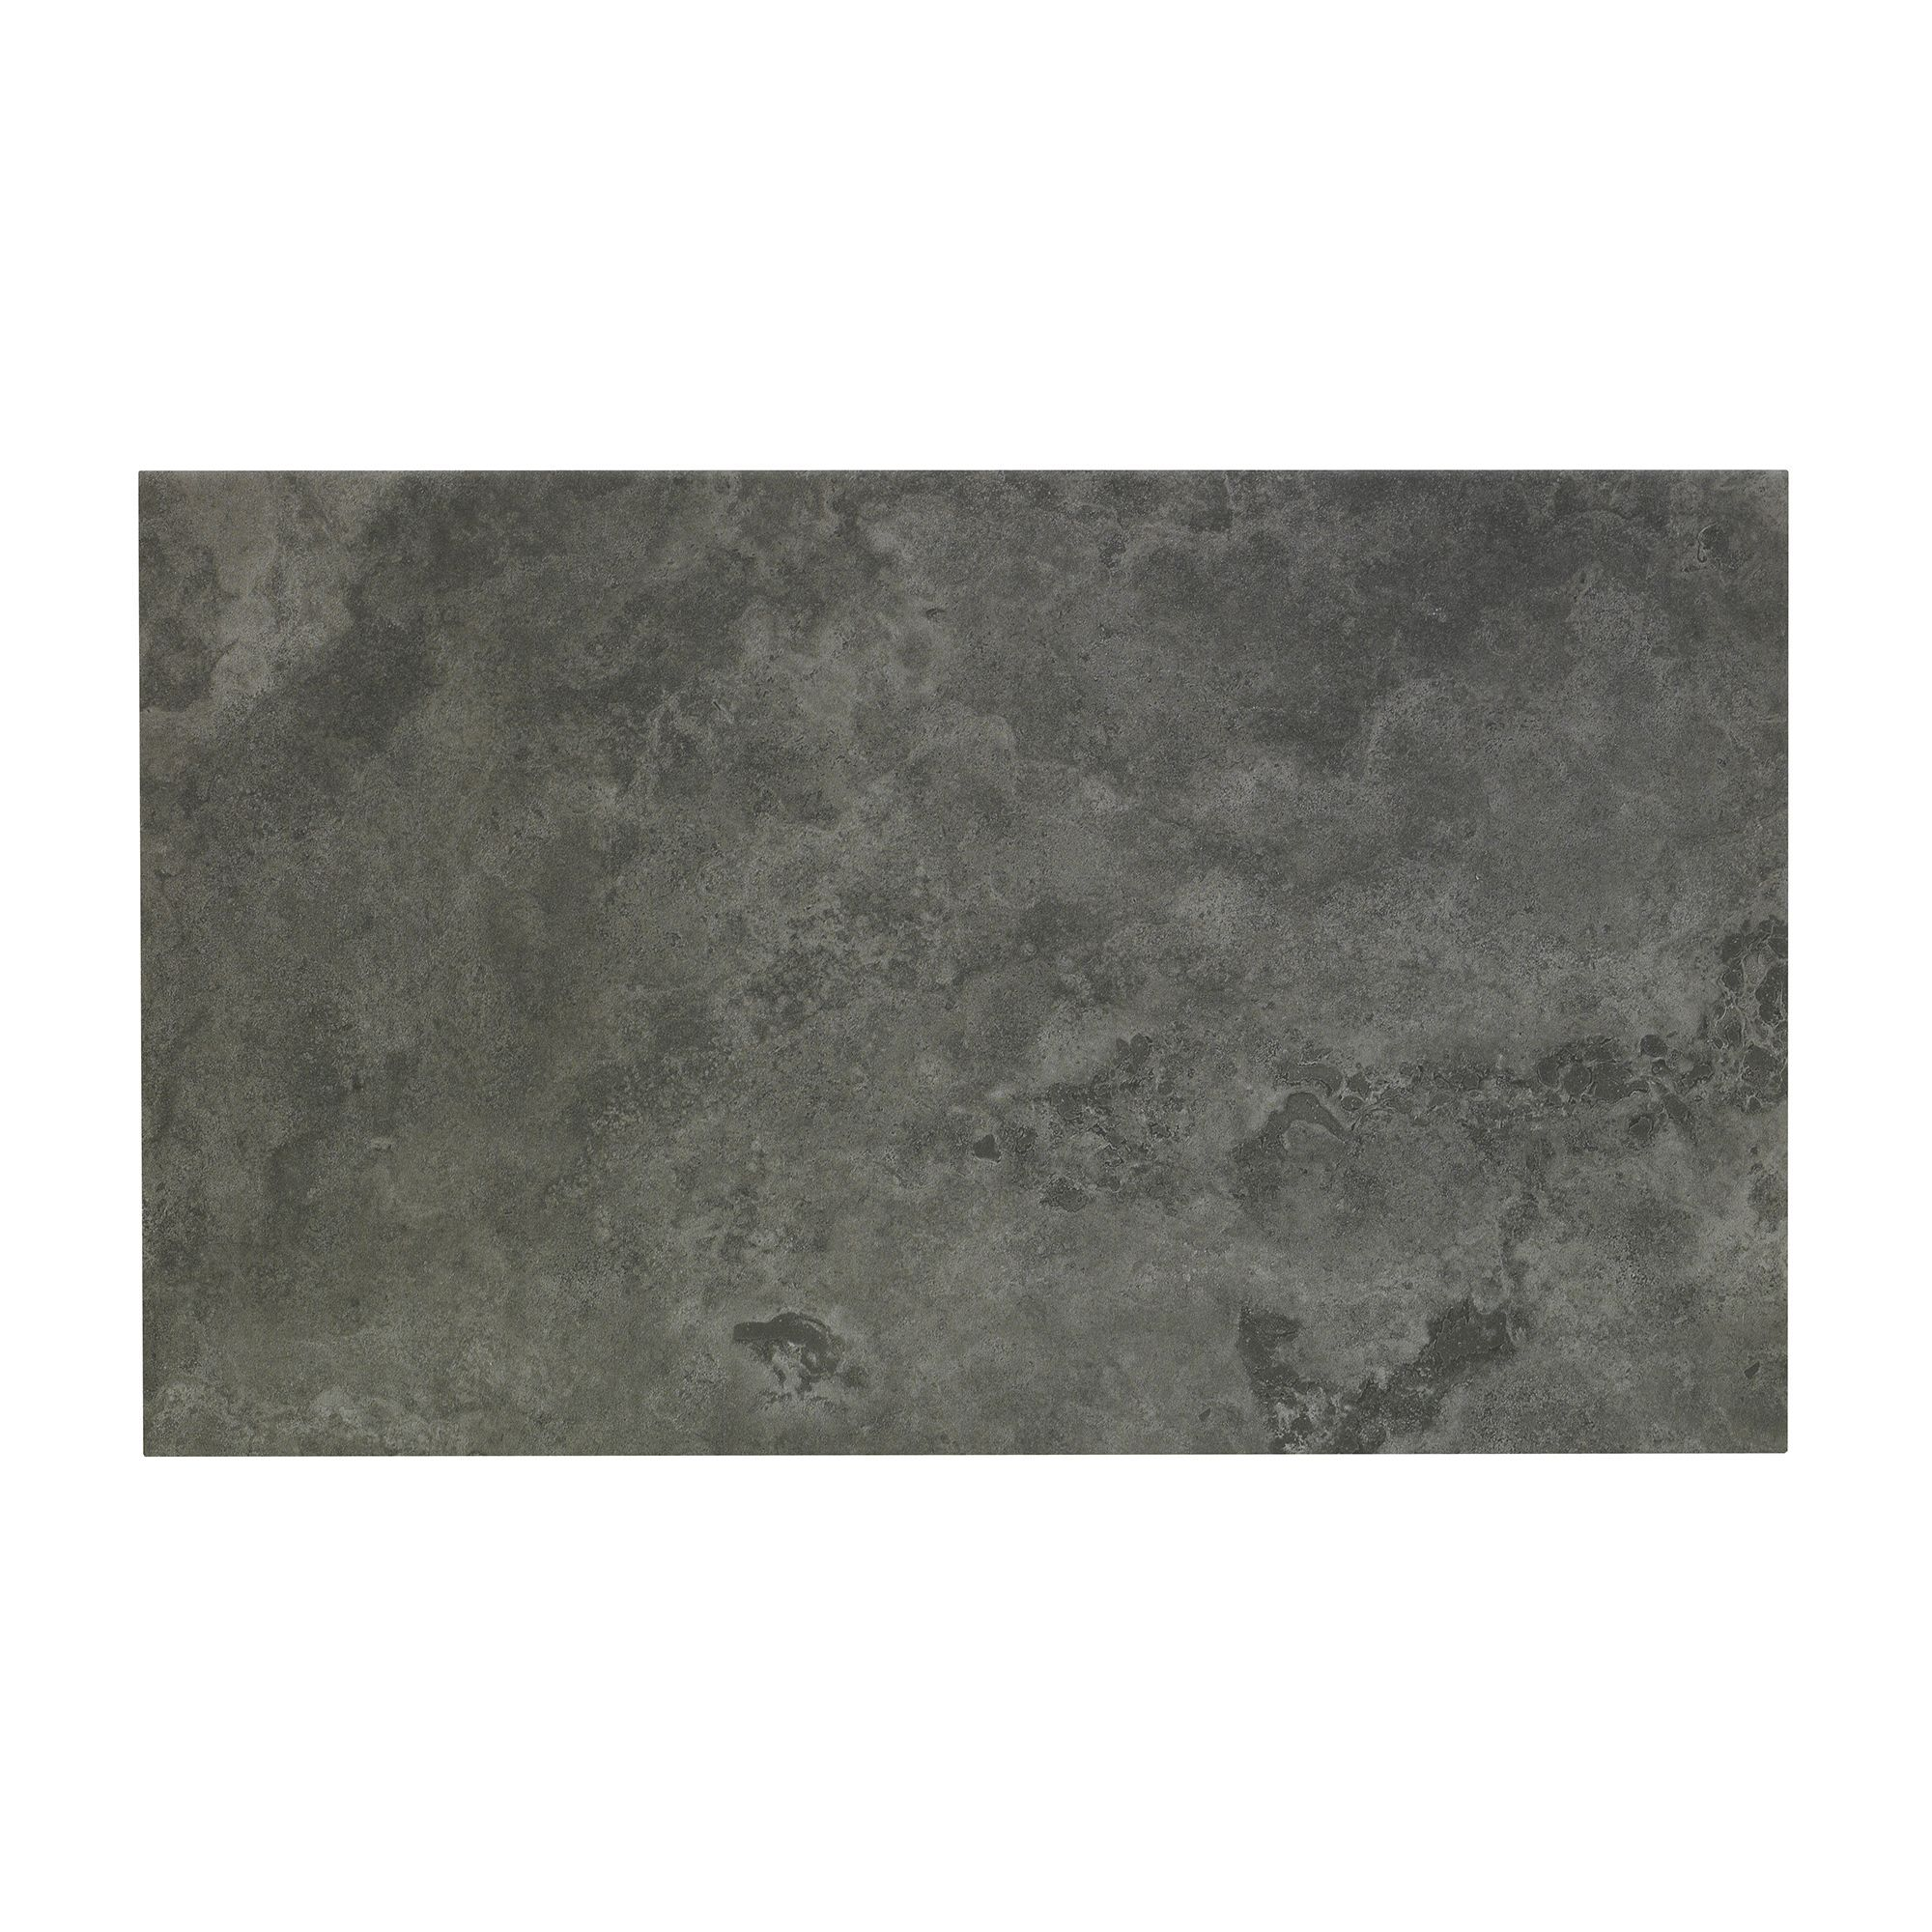 Oscano Graphite Stone effect Ceramic Wall floor tile Pack of 6